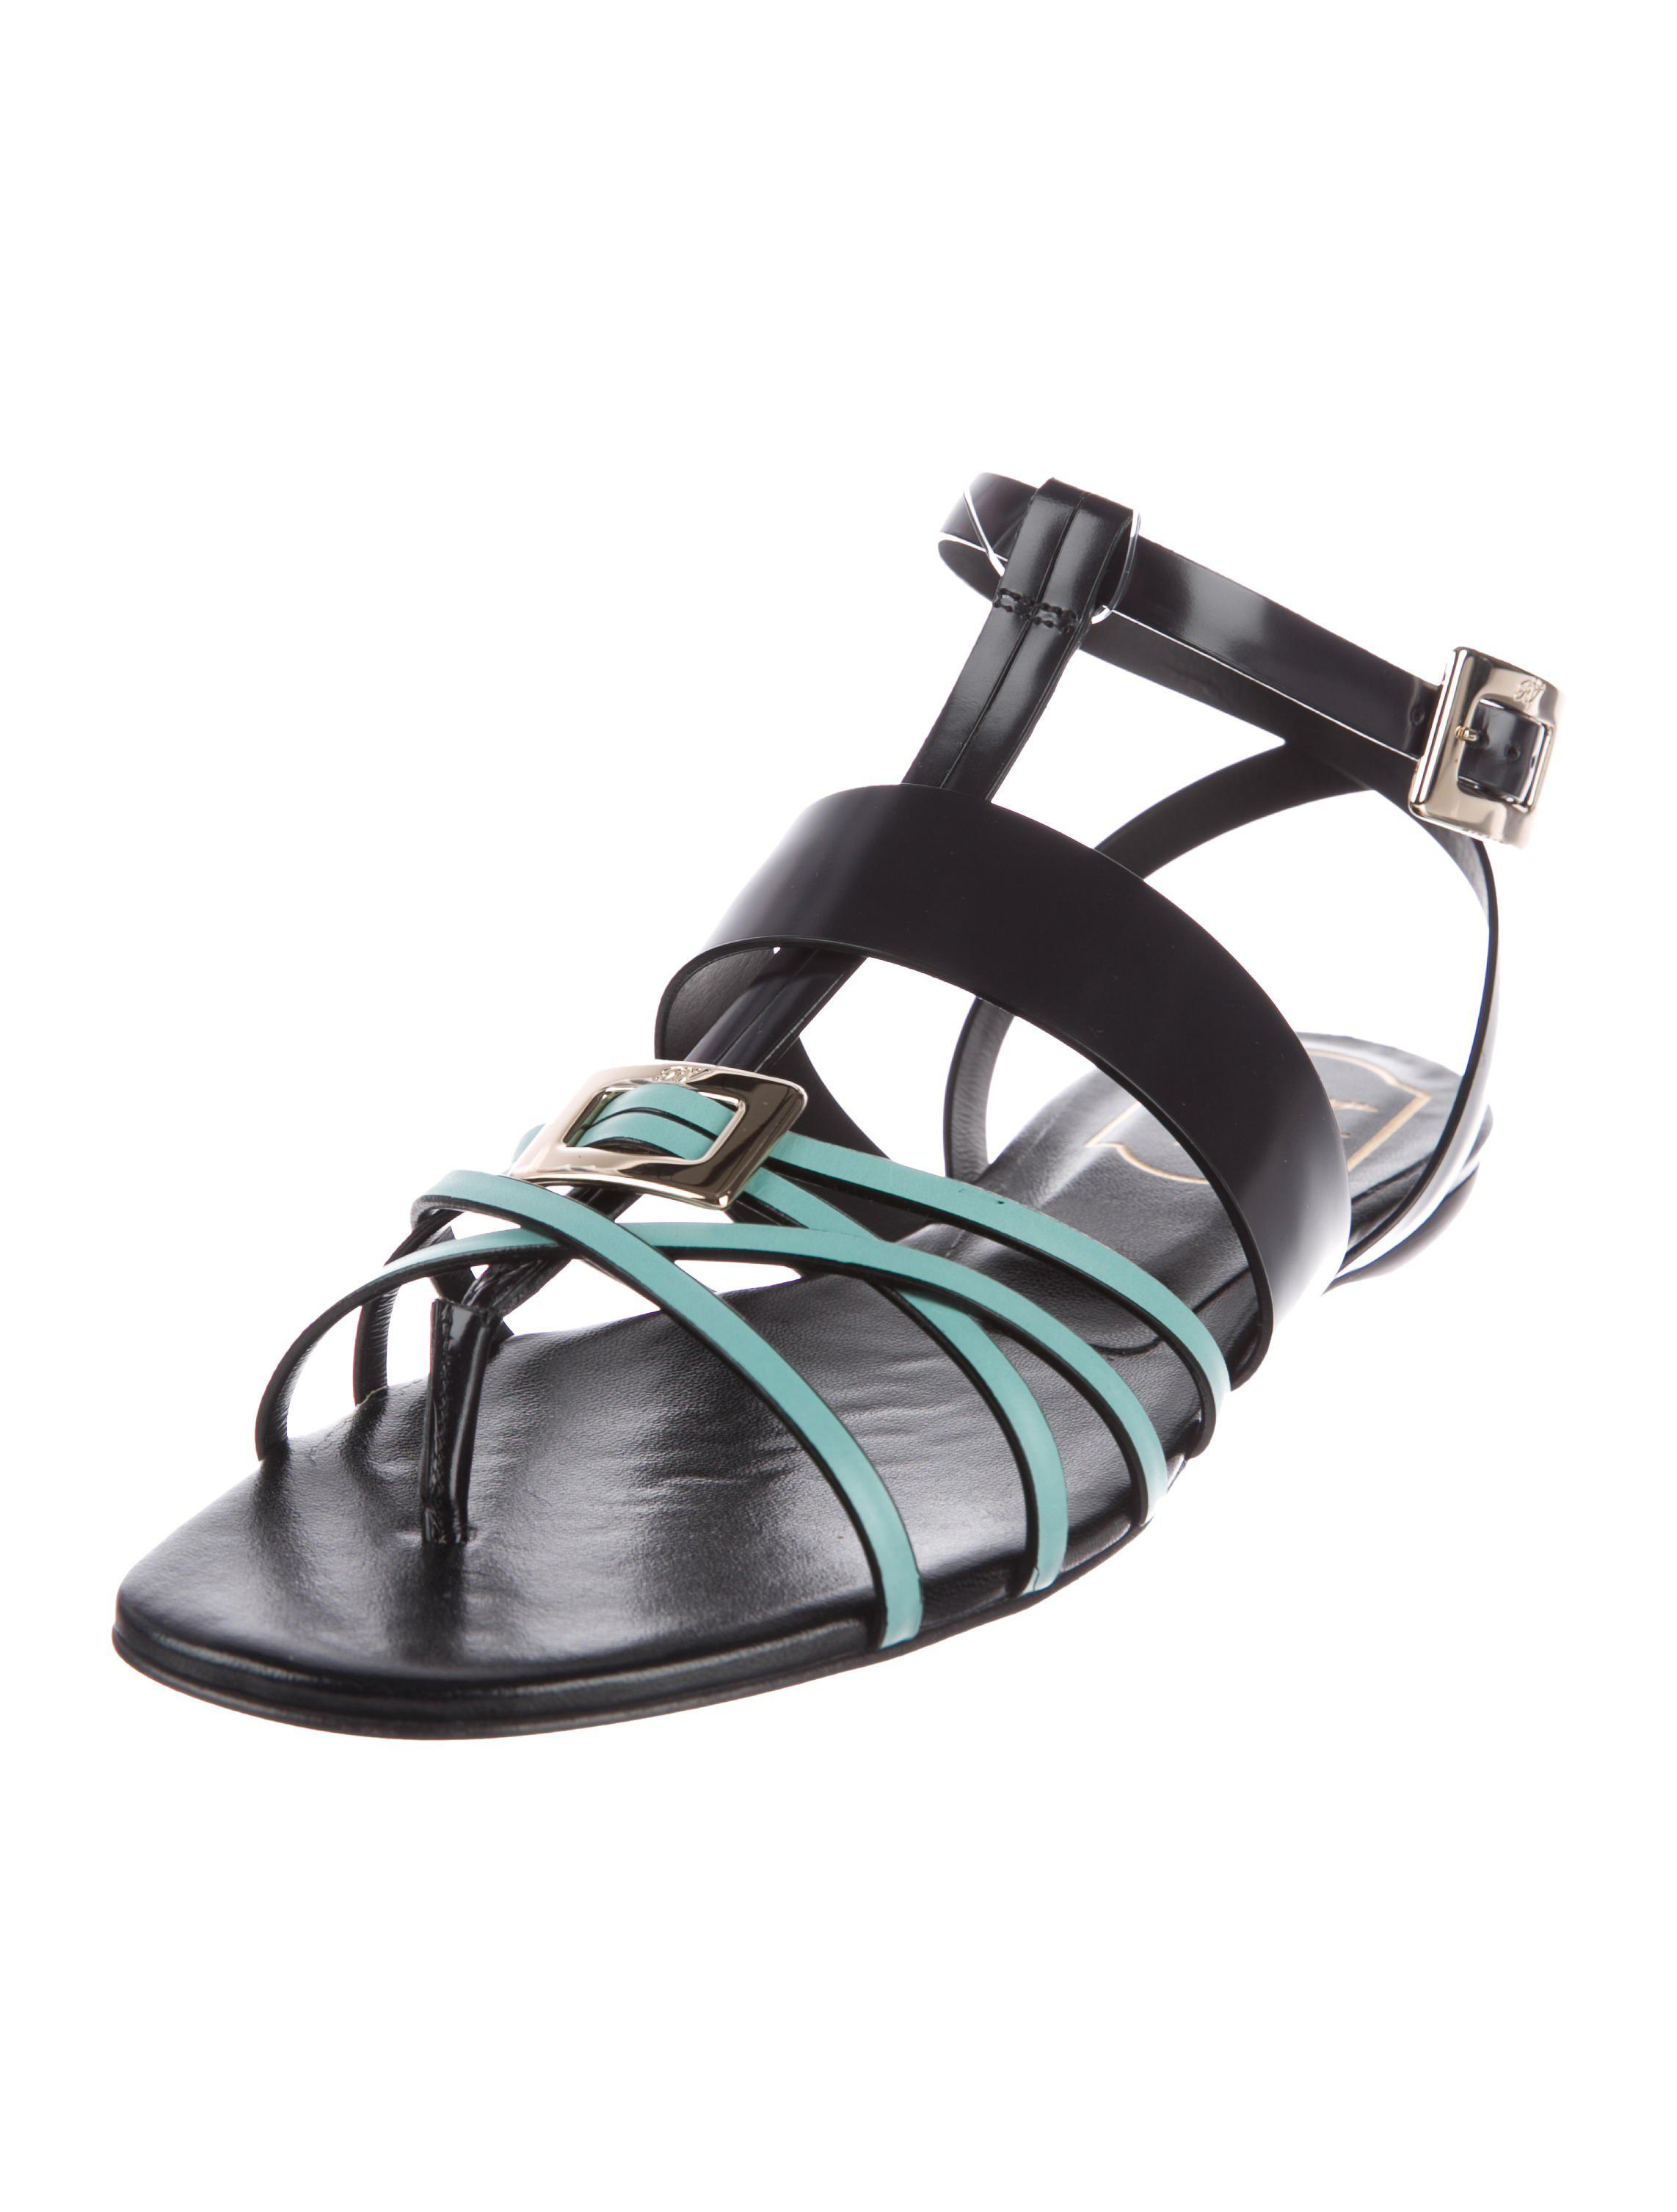 clearance get to buy Roger Vivier Leather Multistrap Sandals w/ Tags outlet with mastercard cheap view cheap sale official sale many kinds of yzHxk5